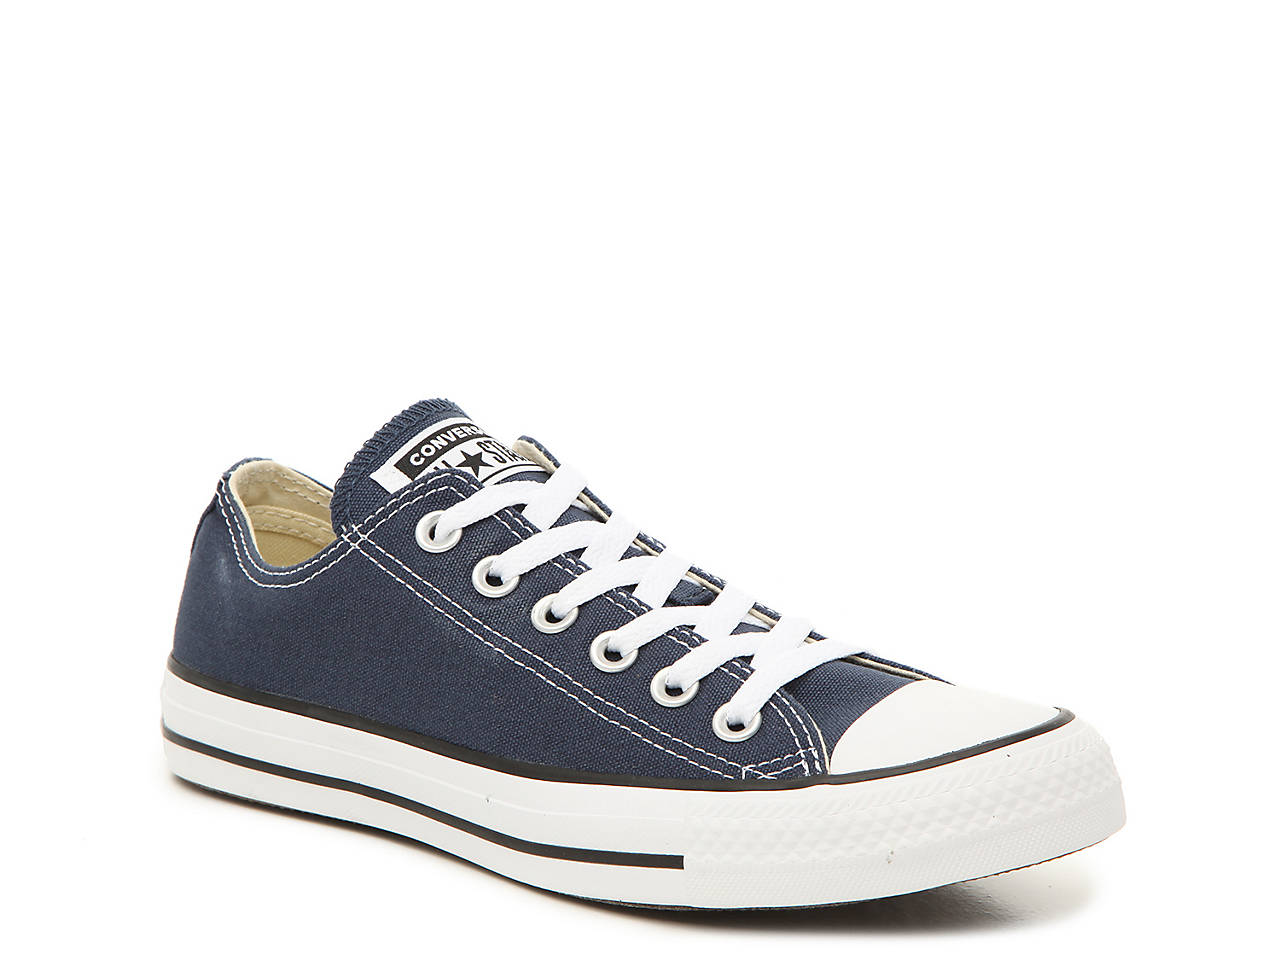 a87b0ea6ab Converse Chuck Taylor All Star Sneaker - Women's Women's Shoes | DSW